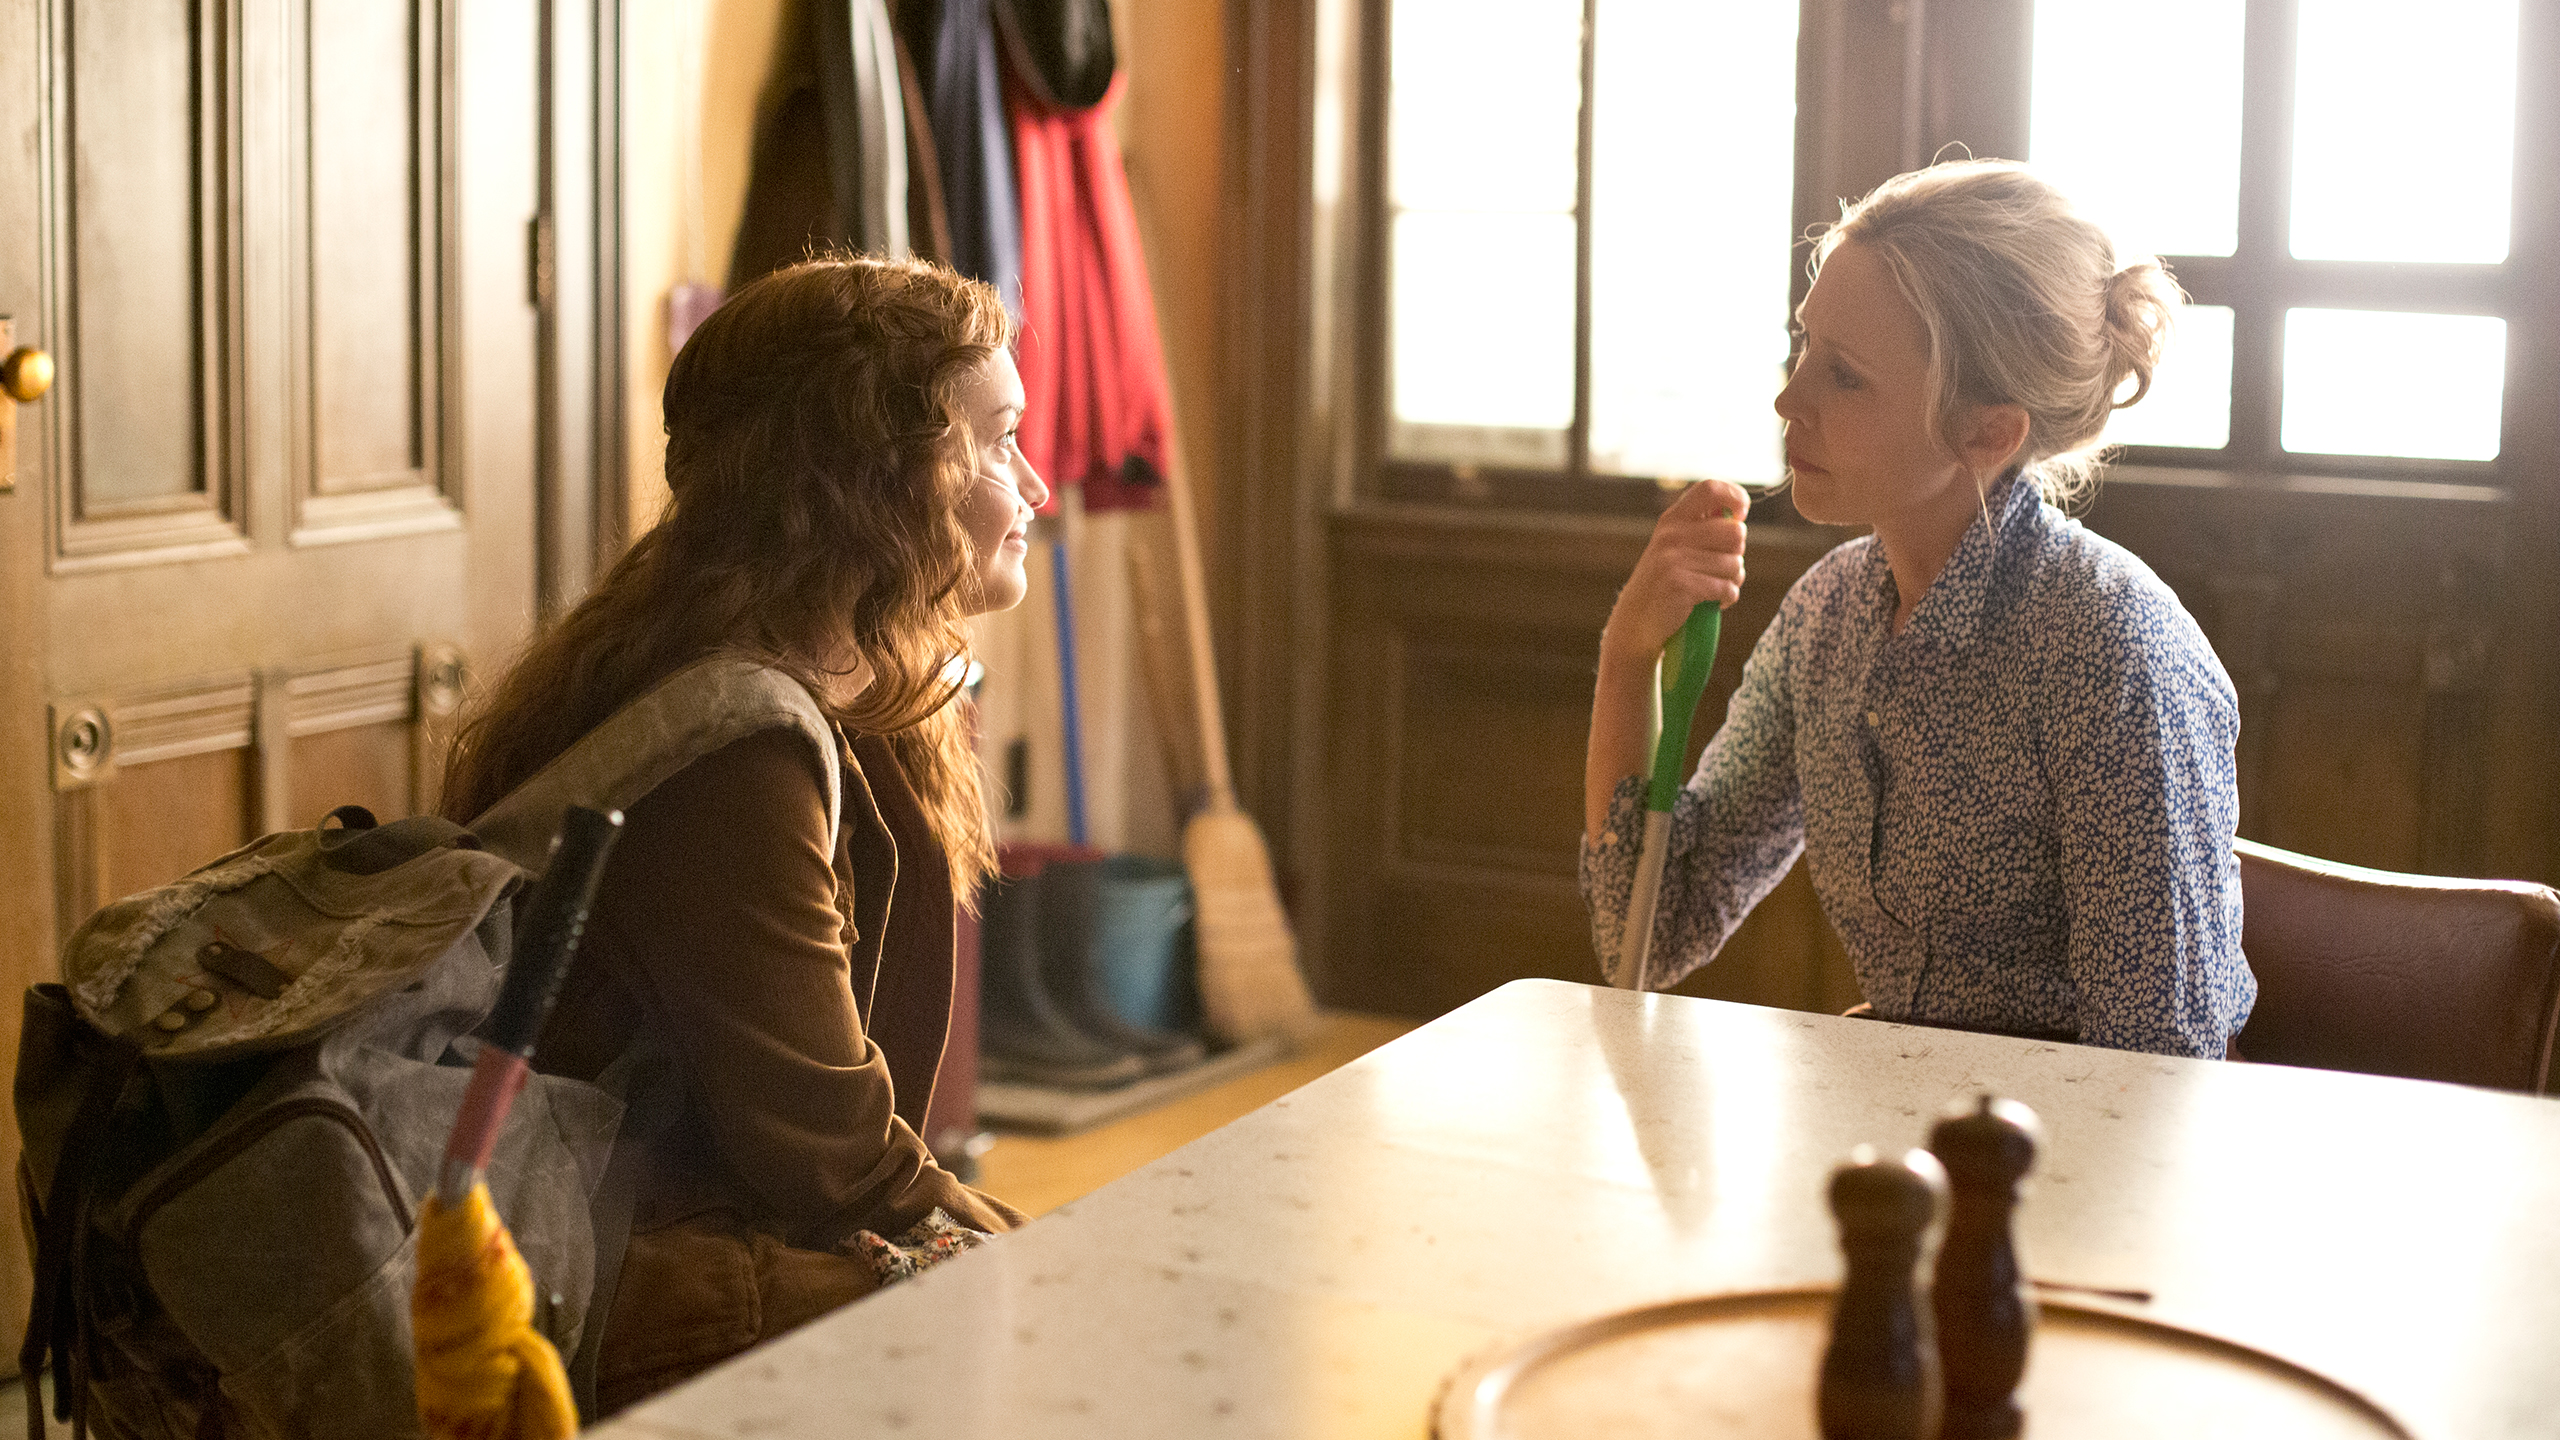 File:11-norma-bates-gets-frank-with-emma.jpg